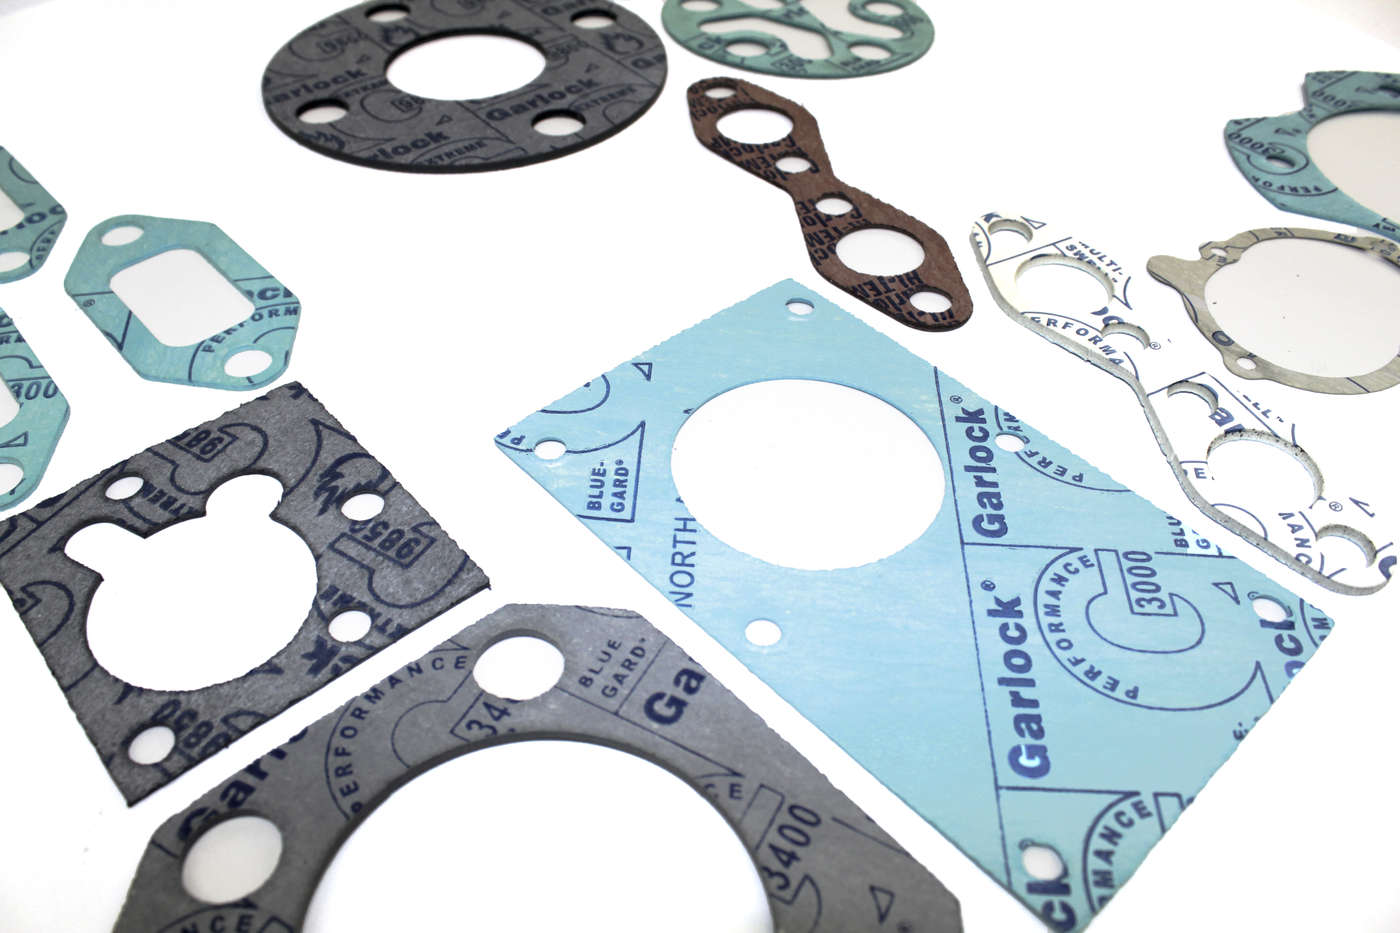 Garlock Multi-Swell Style 3760 Gaskets